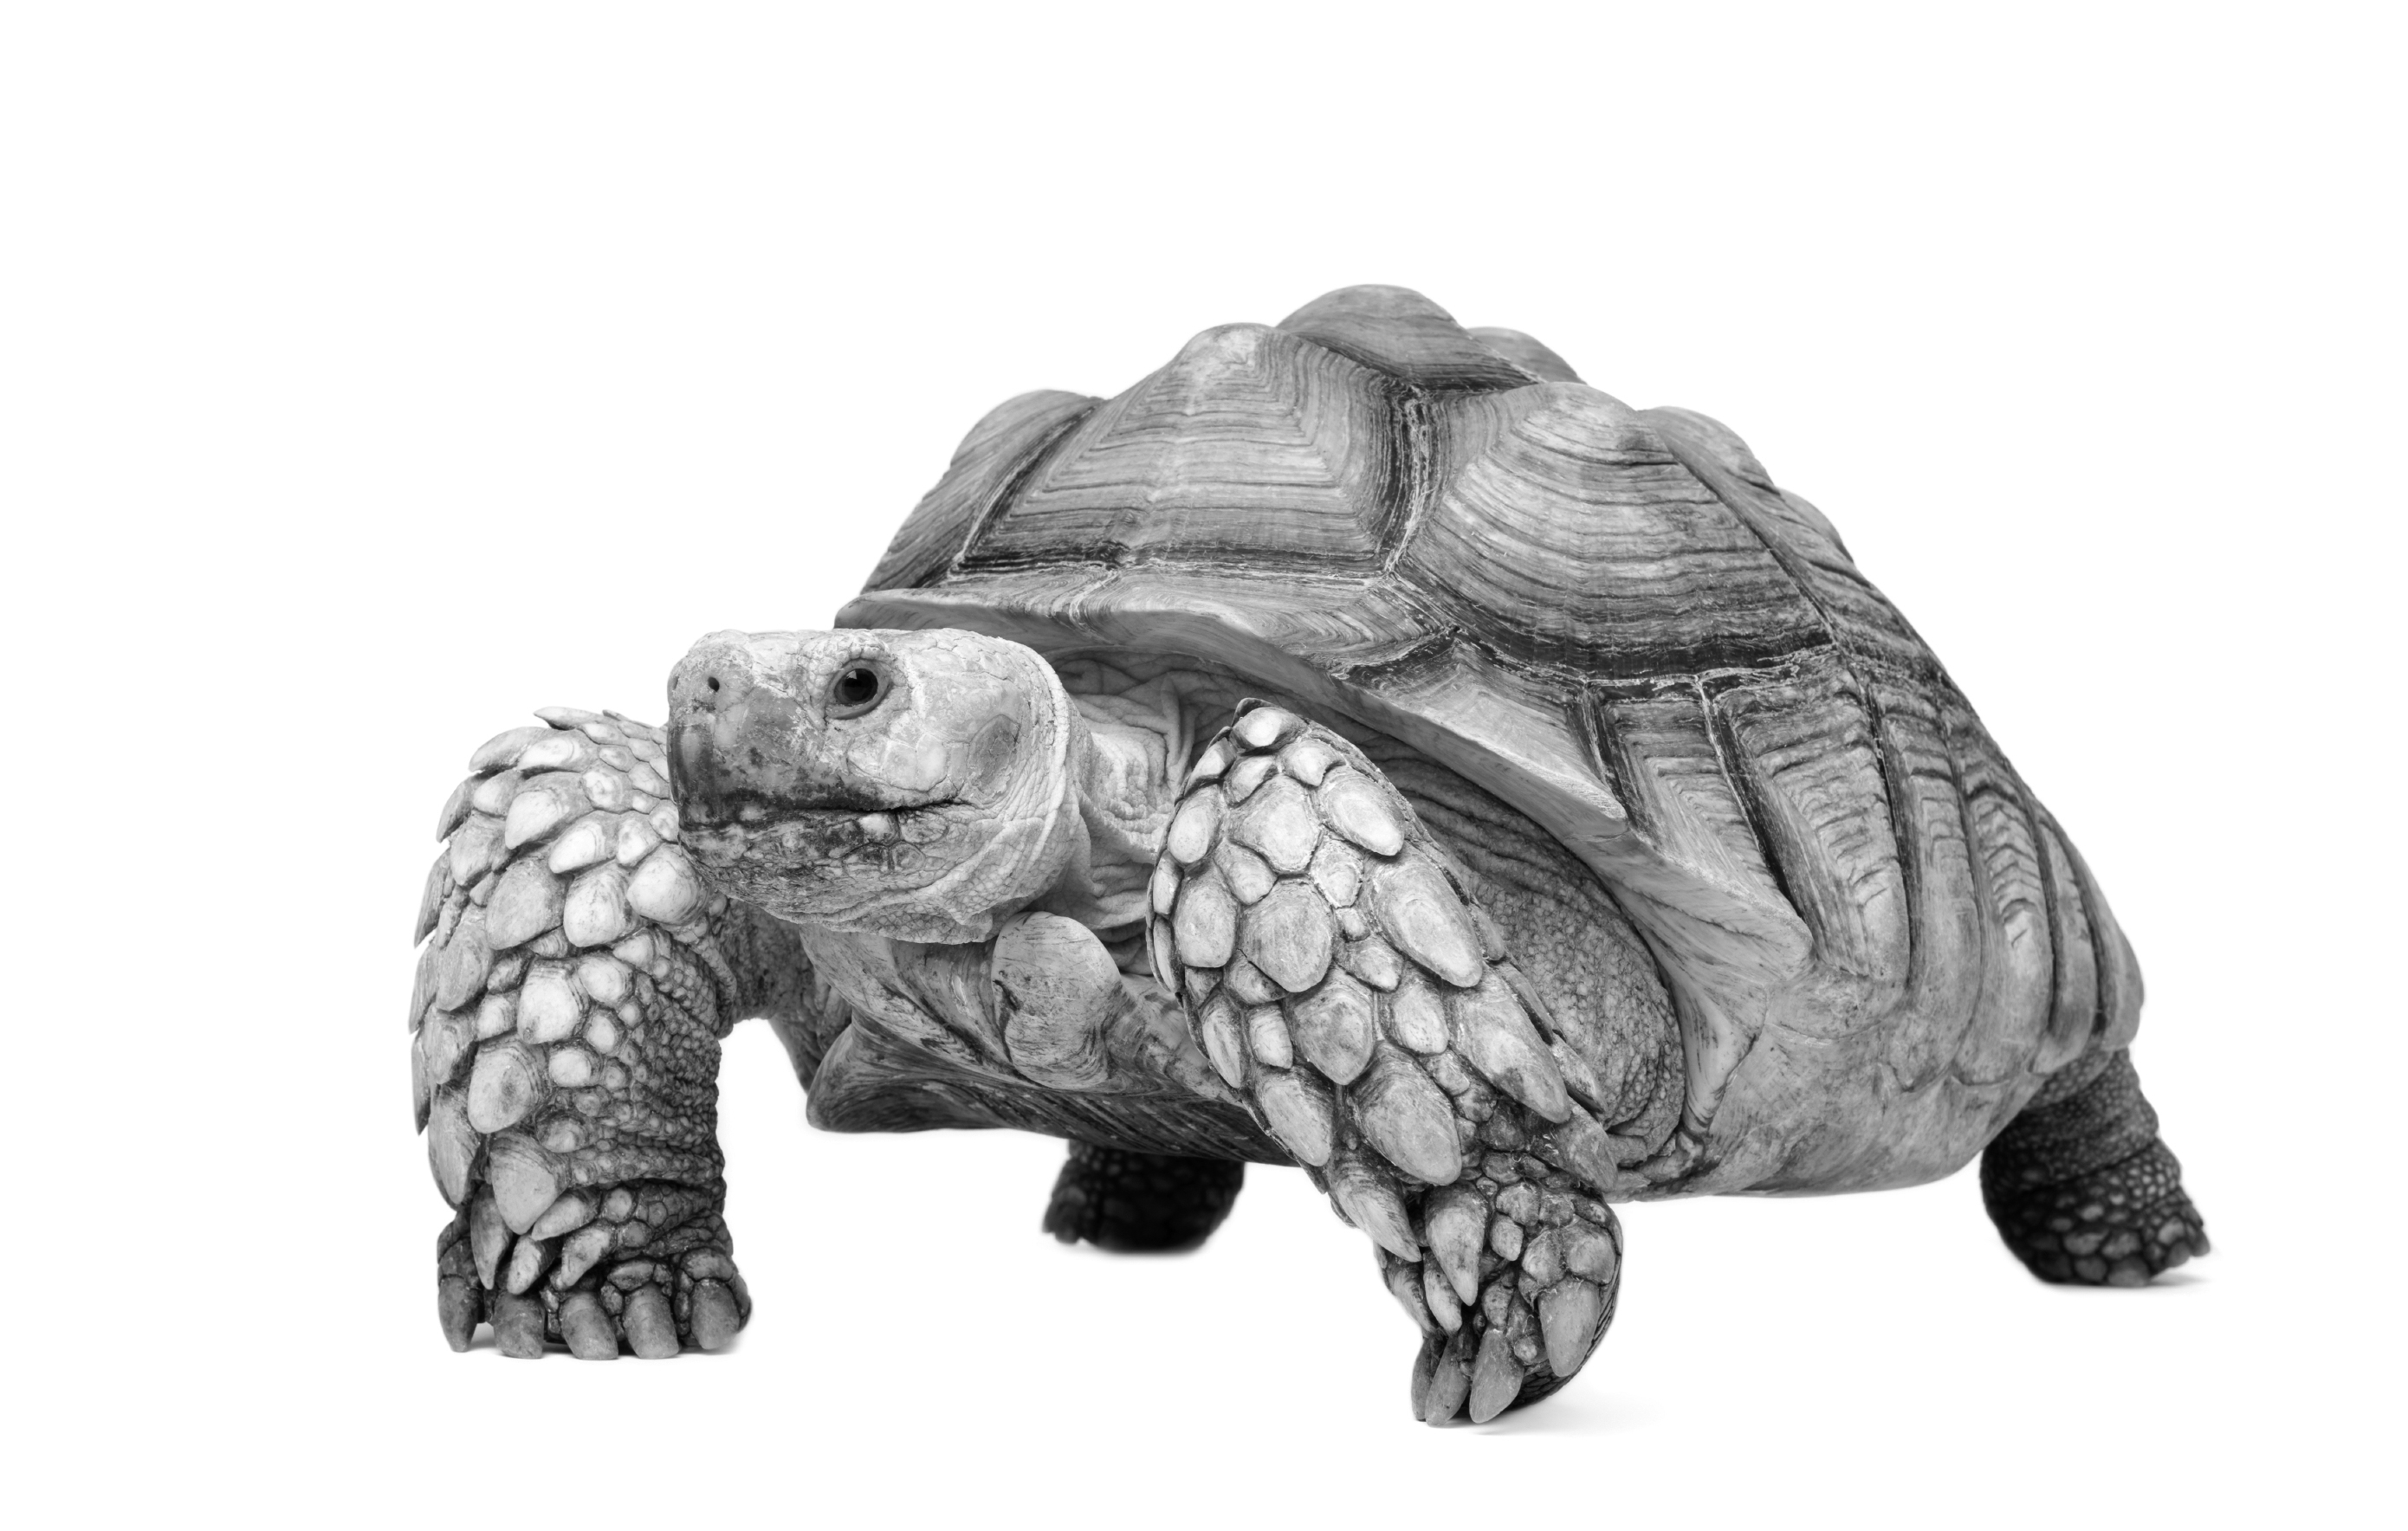 Sulcata Tortoise Background And Care Recommendations Medvet